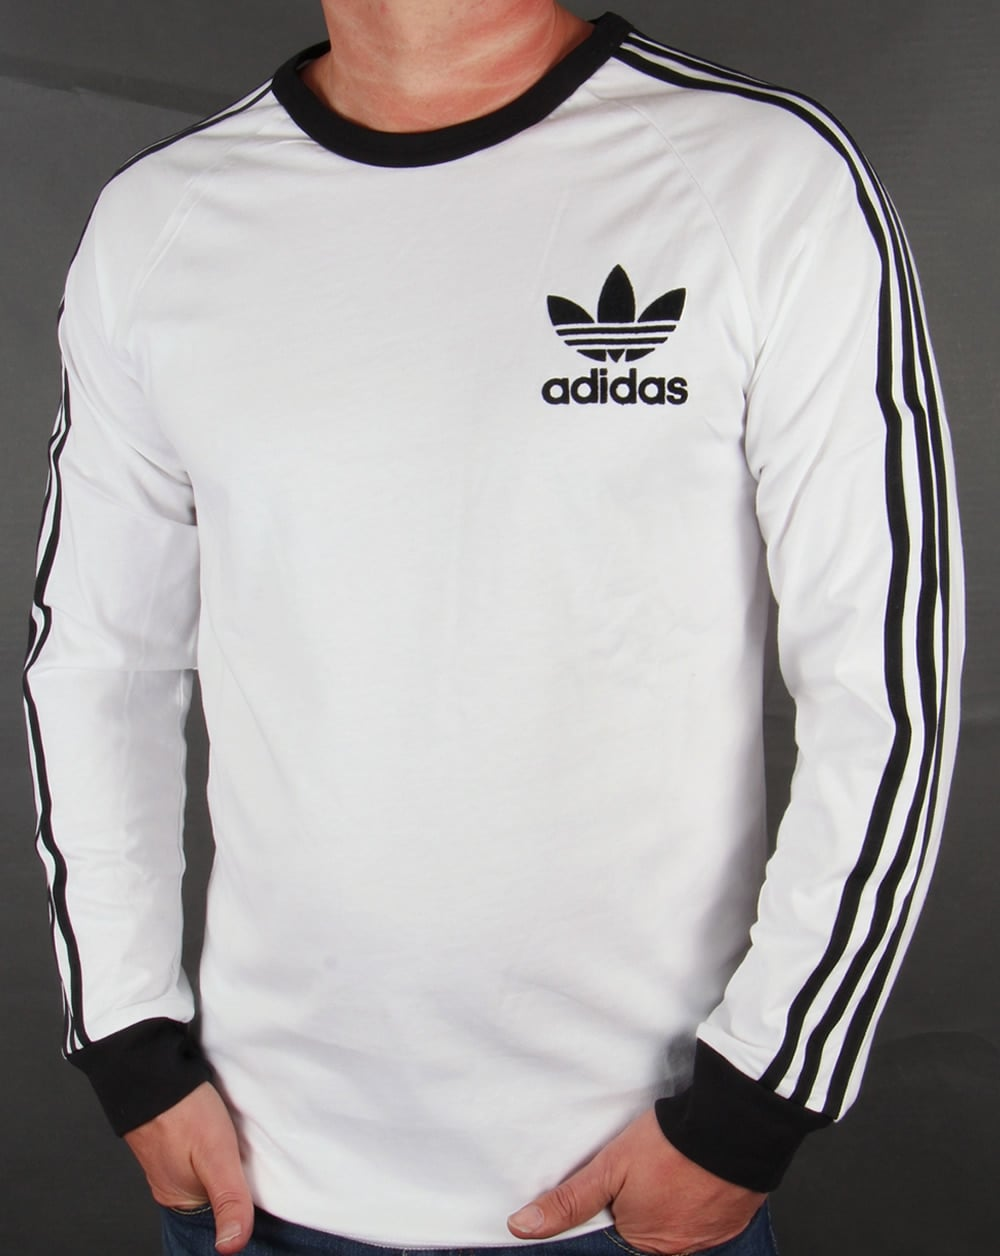 Adidas originals 3 stripes long sleeve t shirt white black for Adidas long sleeve t shirt with trefoil logo